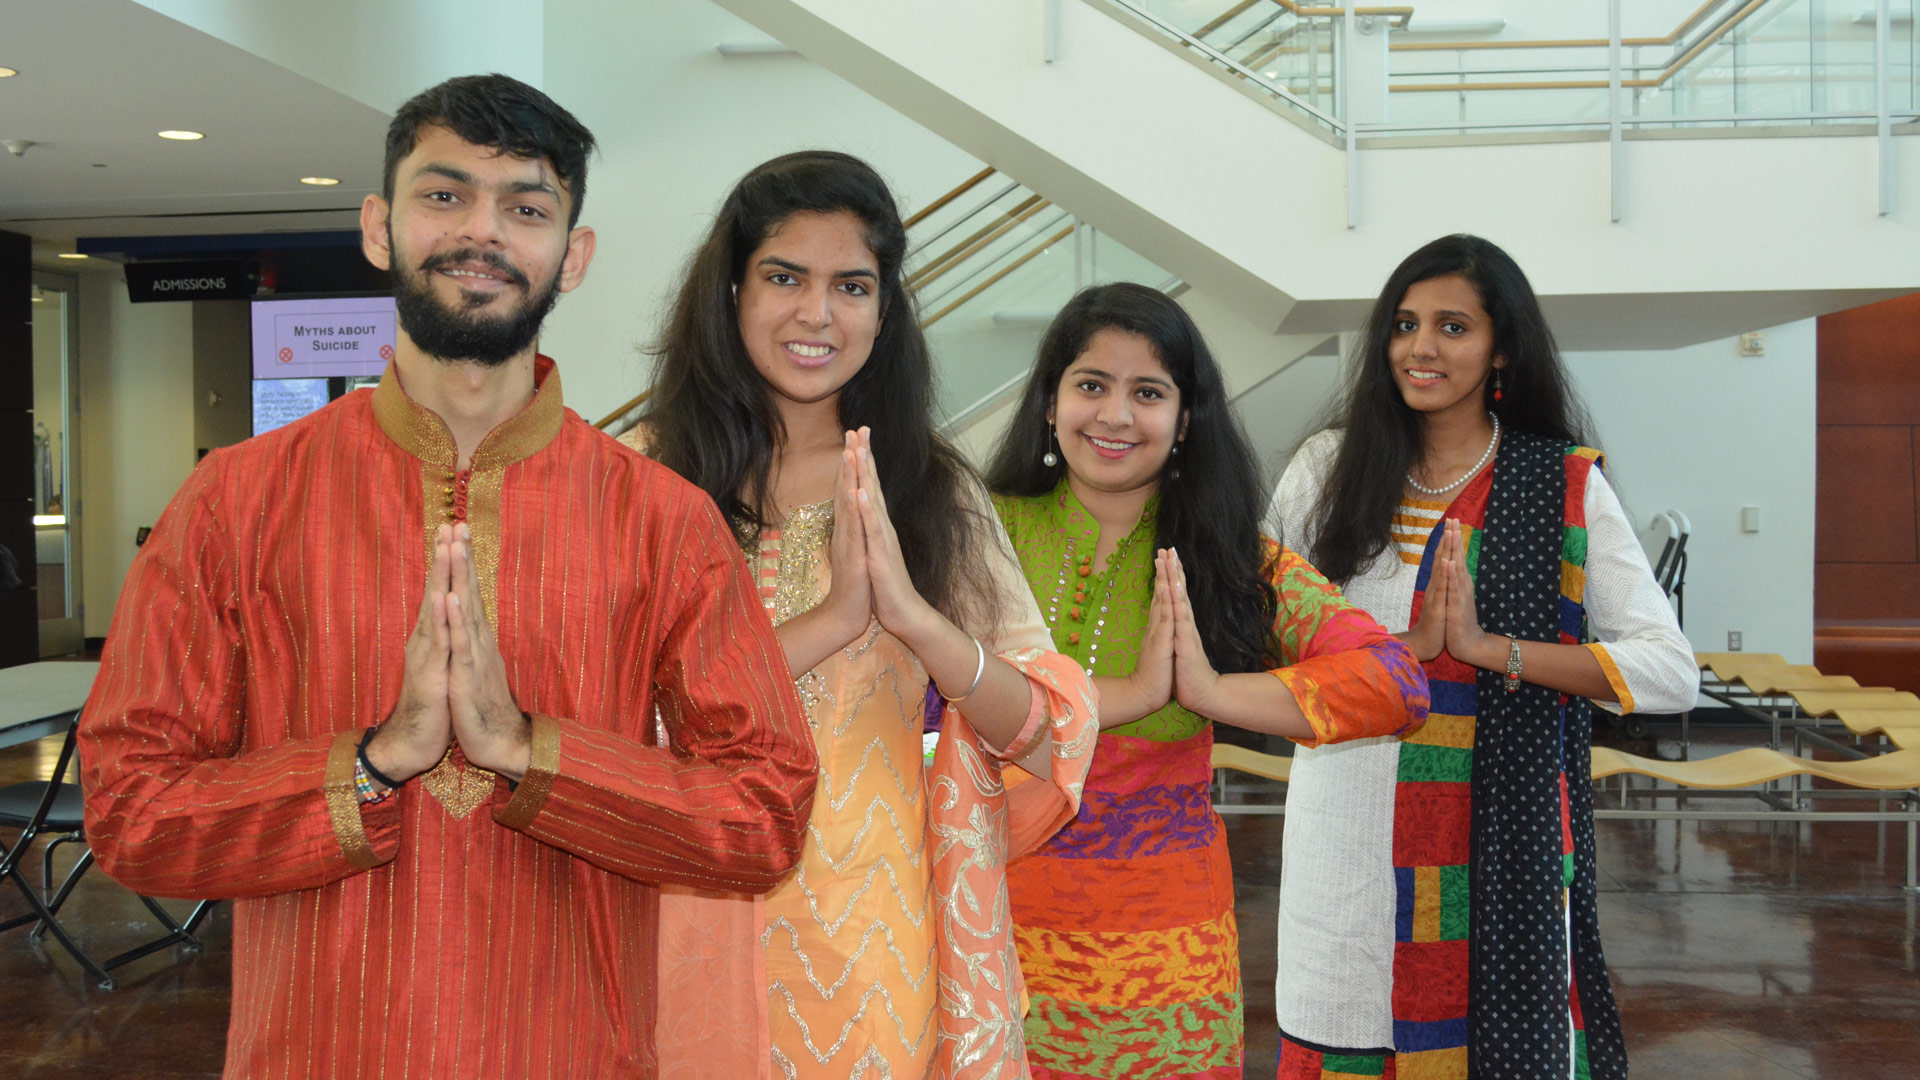 UHCL students celebrate Diwali